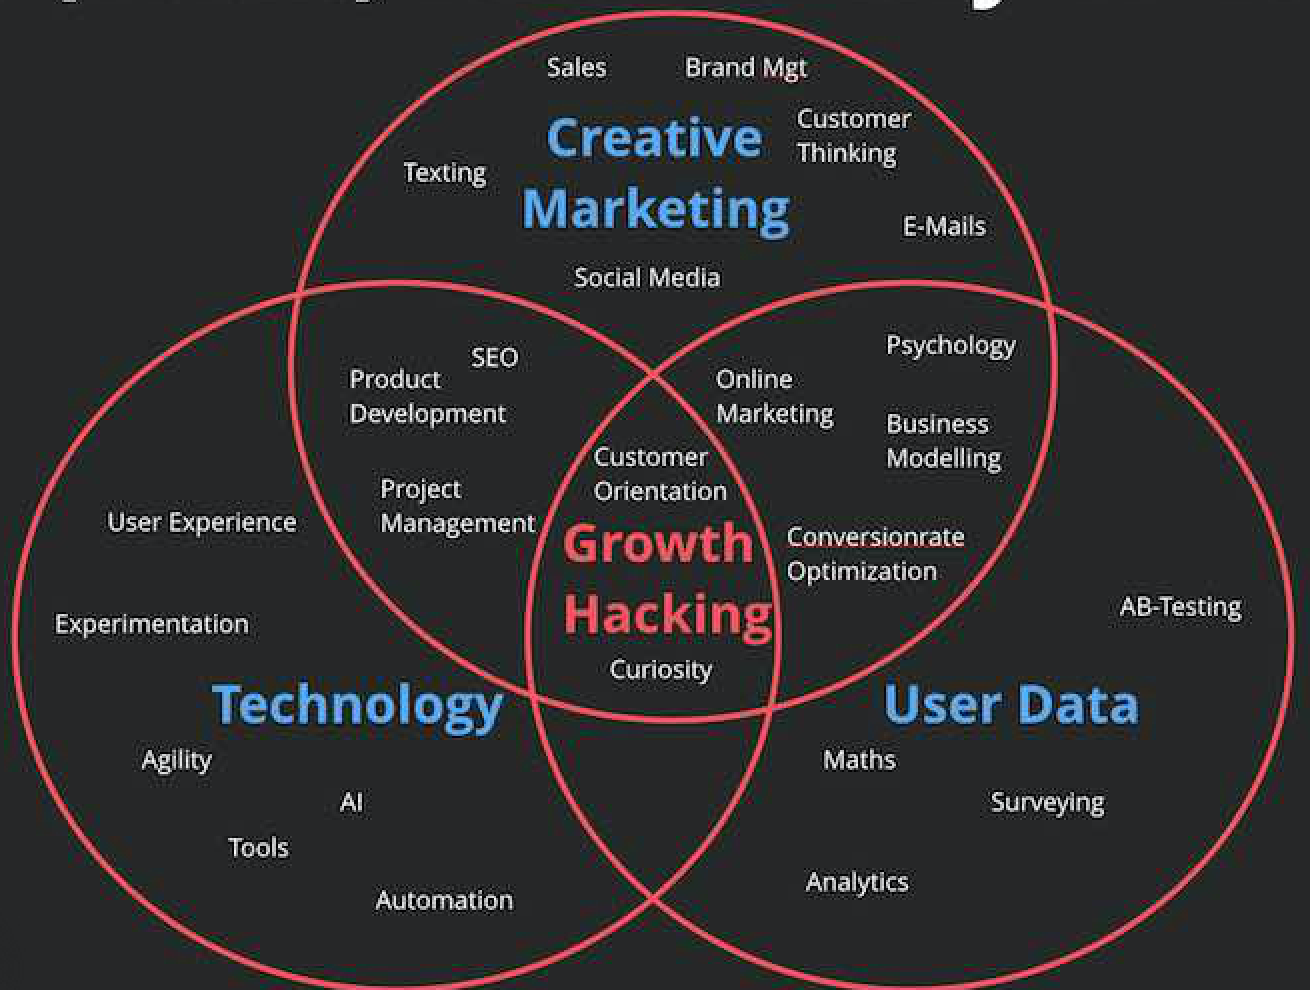 ARE YOU OUR NEXT GROWTH HACKER? -